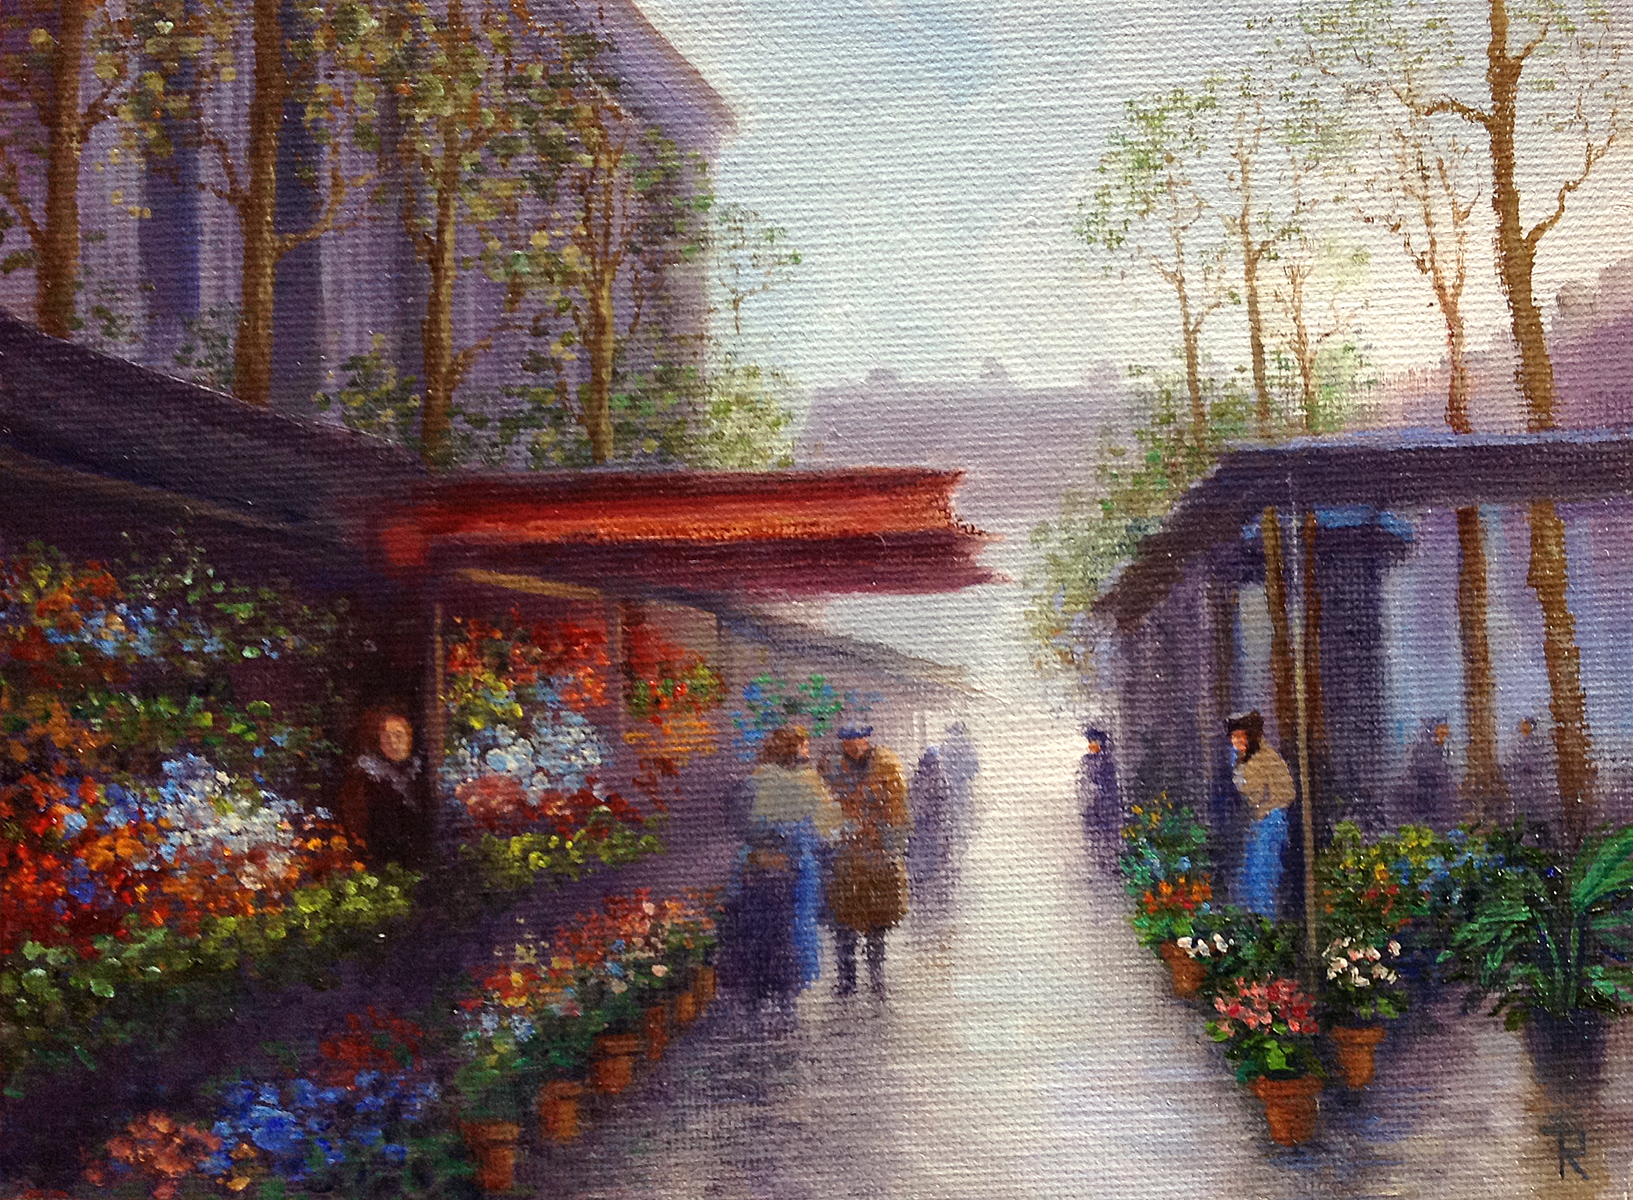 Tatiana Roulin, Parisian Flower Market, SOLD